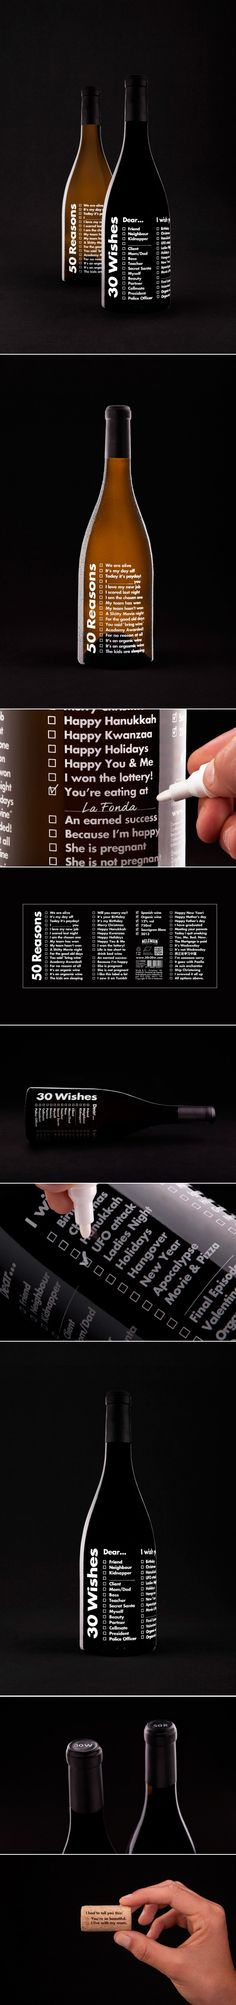 So I def might make one of these labels just to put on wine bottles I give to my friends and family . . of course if I knew where to get this I would be lazy enough to buy it!  -Neleman :: 30 Wishes and 50 Reasons wines #packaging #creative